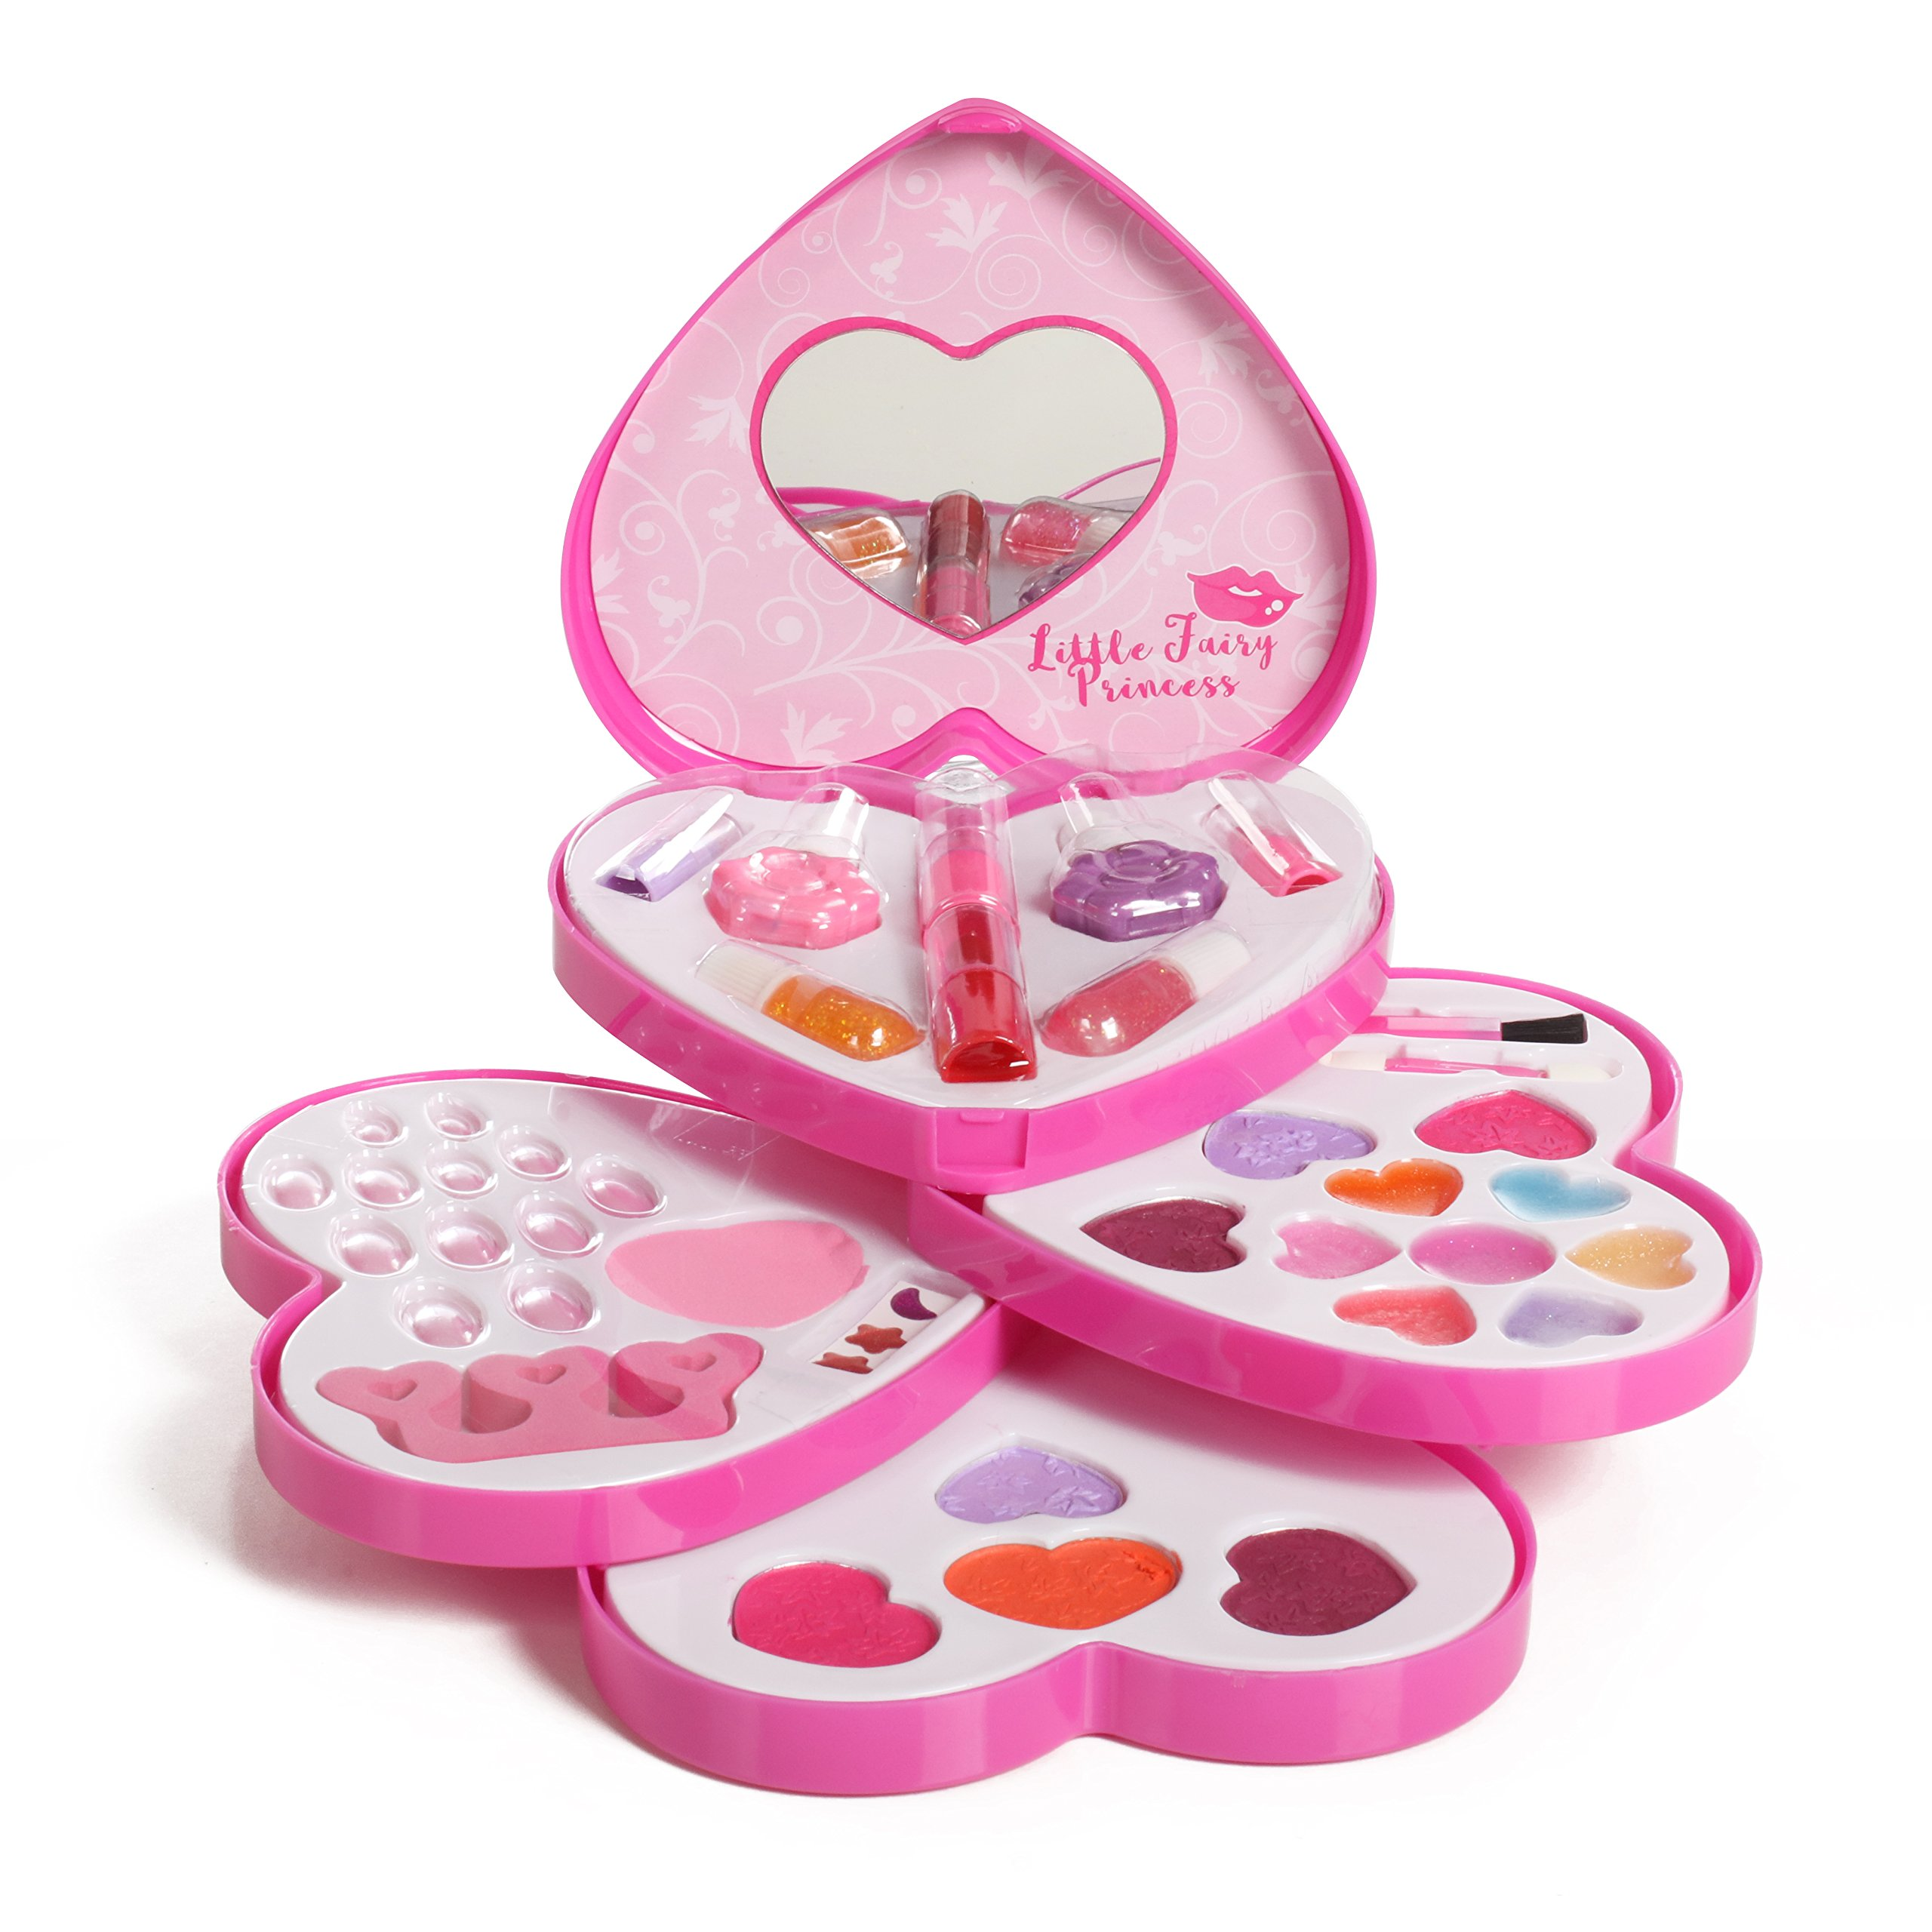 IQ Toys Little Fairy Princess Washable Makeup and Nail Heart Palette with Mirror by IQ Toys